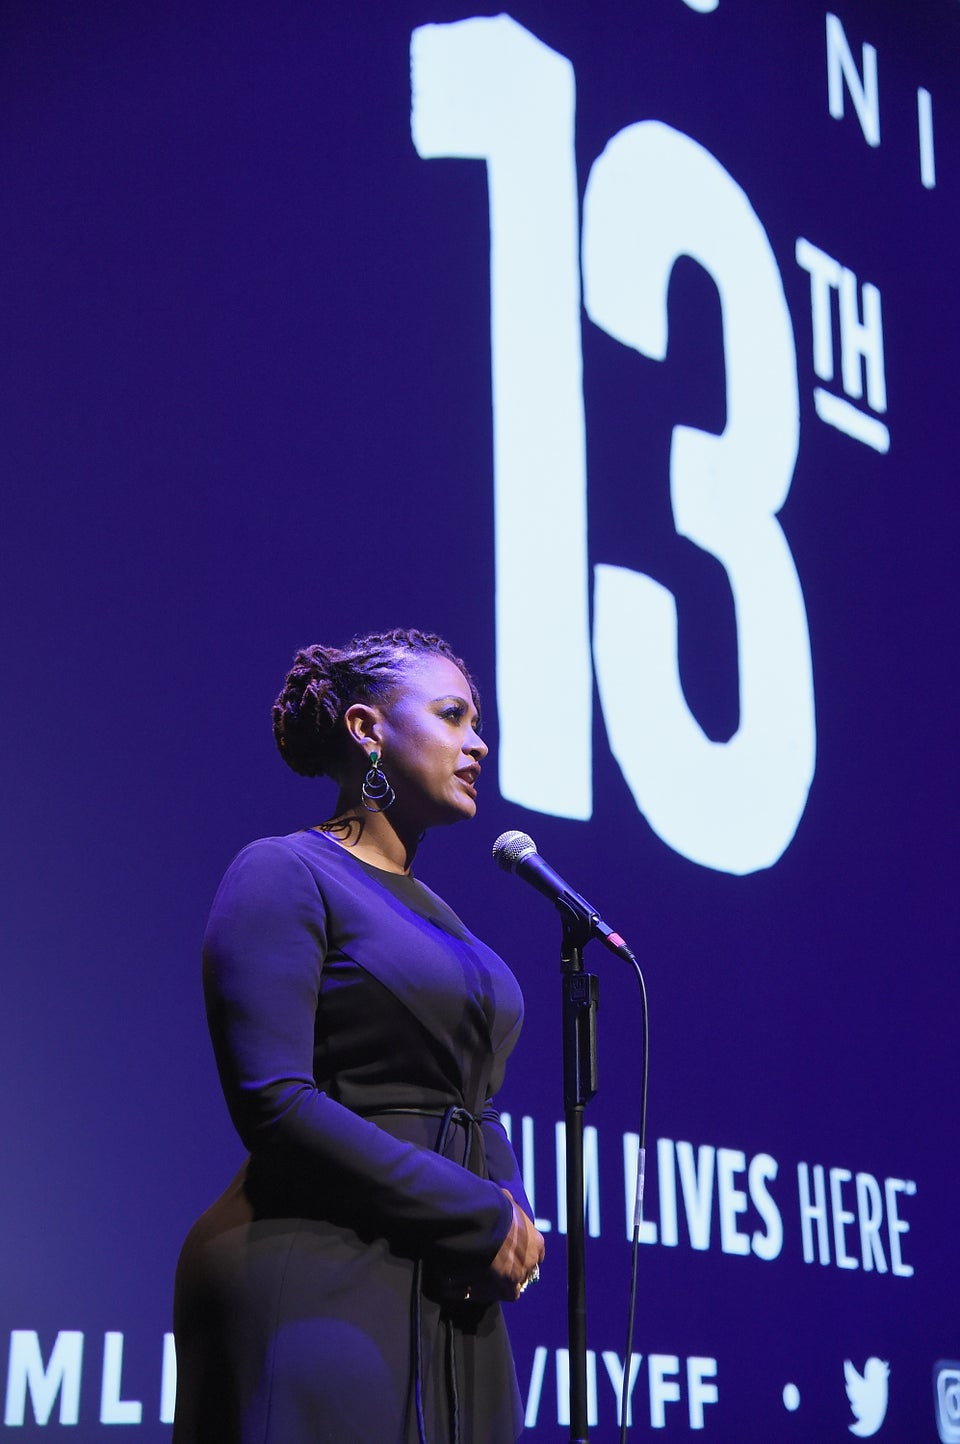 Slavery, Incarceration & Racism: 14 Disturbing Connections Examined In Ava DuVernay's Oscar-Nominated '13th' Documentary